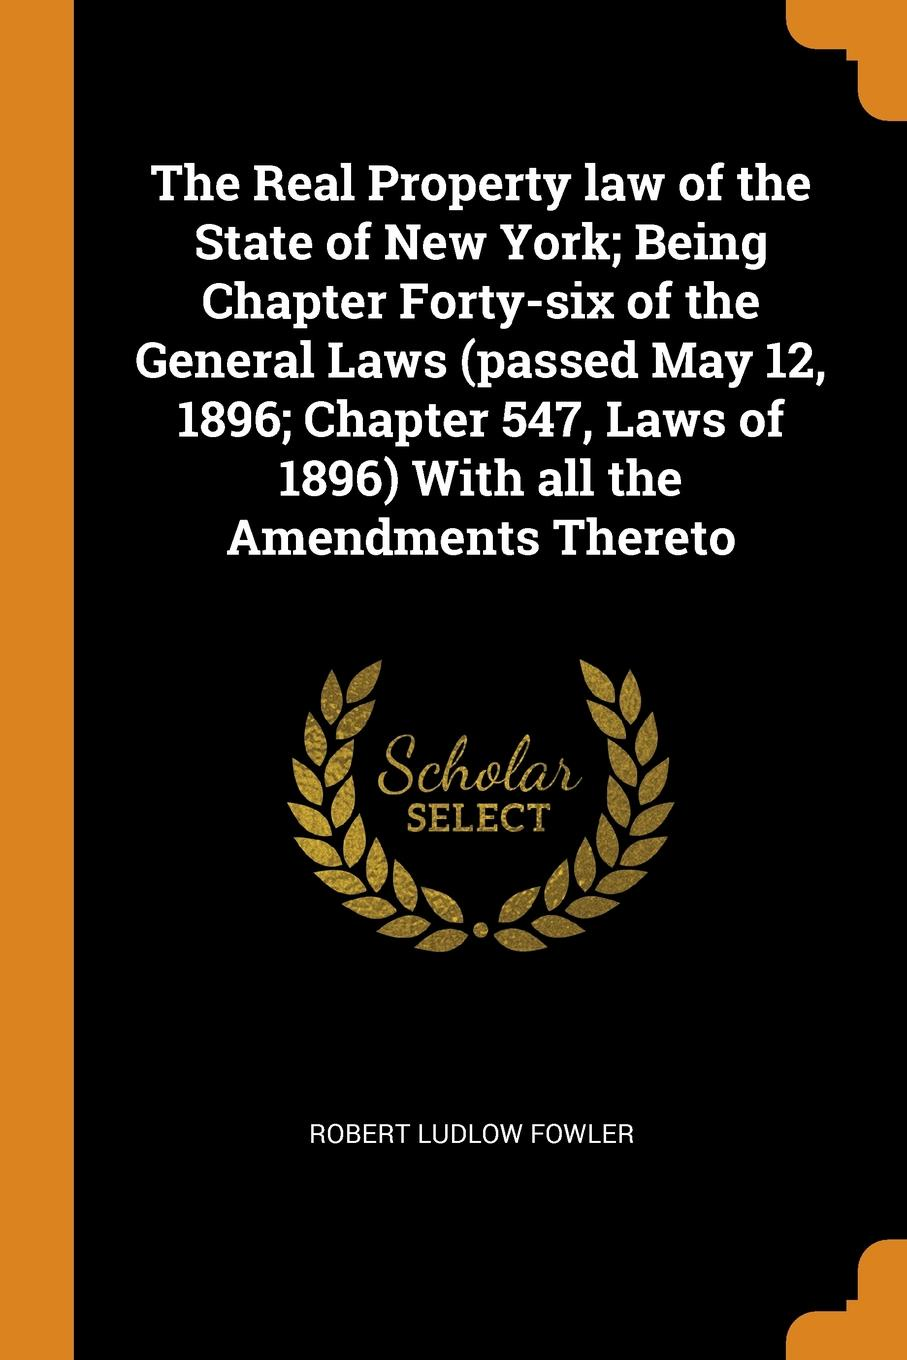 Robert Ludlow Fowler The Real Property law of the State of New York; Being Chapter Forty-six of the General Laws (passed May 12, 1896; Chapter 547, Laws of 1896) With all the Amendments Thereto robert ludlow fowler history of the real property in new york